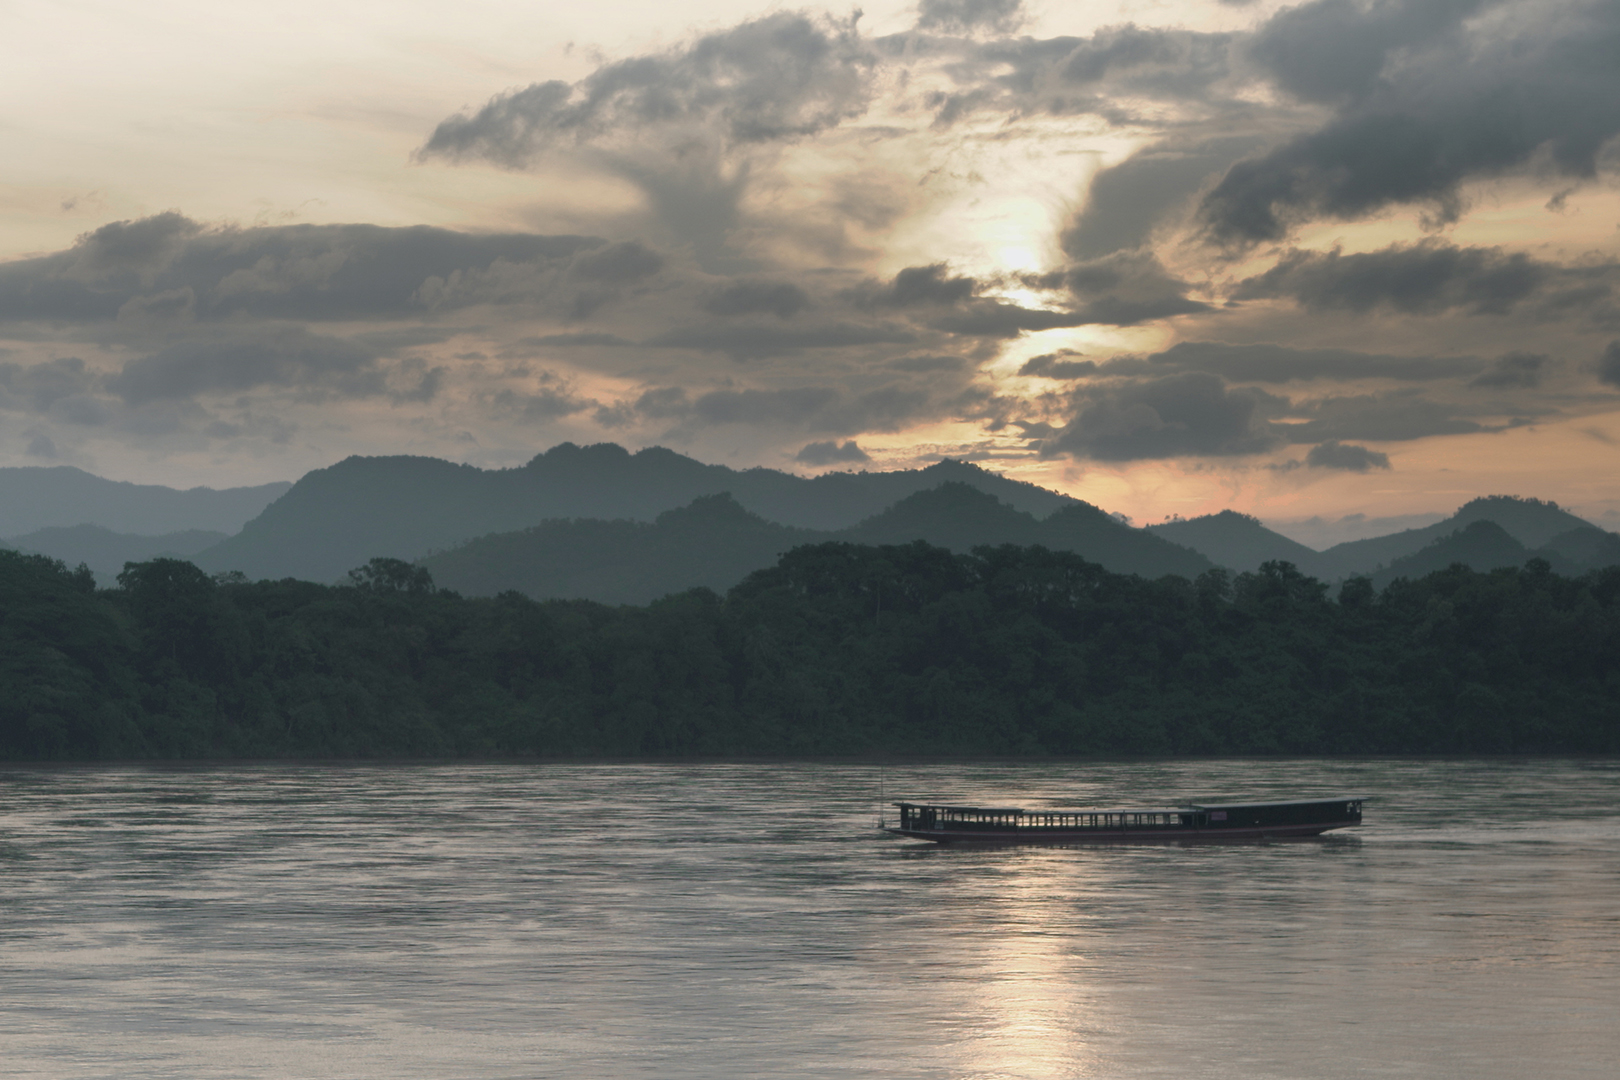 Travel the mighty Mekong in style